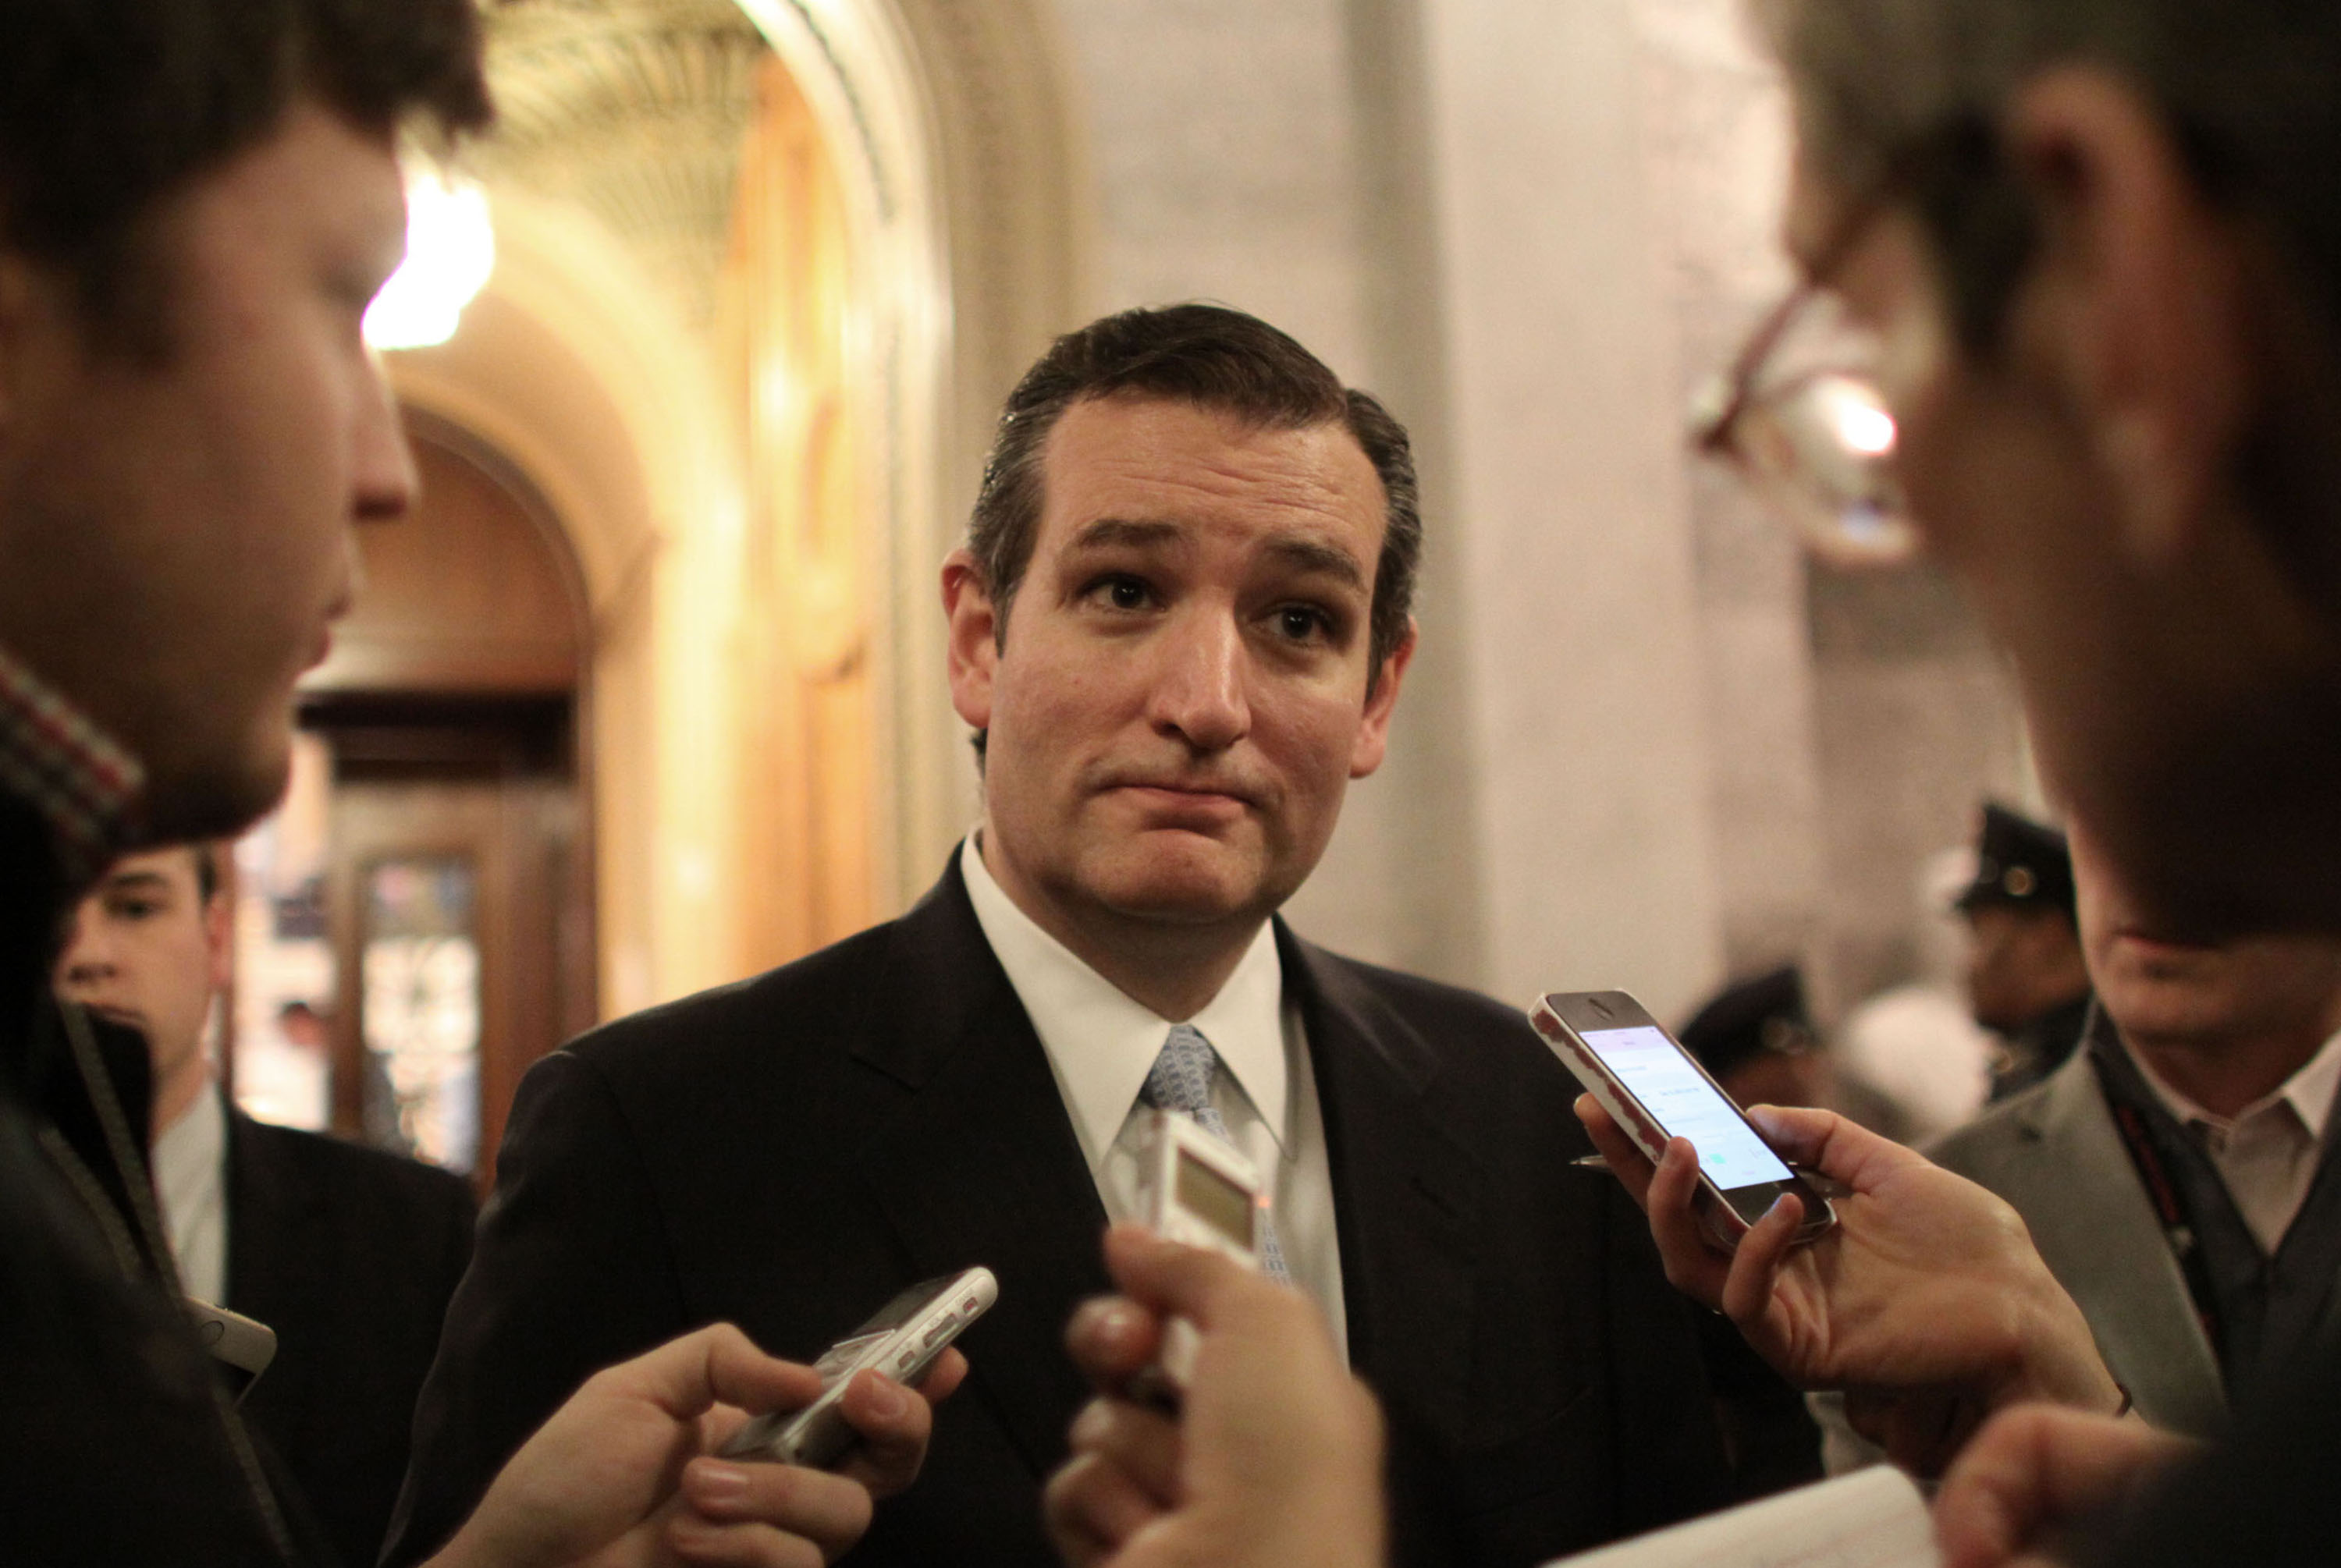 Sen. Ted Cruz (R-TX) talks with reporters after the Senate voted on a $1.1 trillion spending bill to... [+] fund the government through the next fiscal year on on Saturday, December 13, 2014 on Capitol Hill in Washington. (AP Photo/Lauren Victoria Burke)